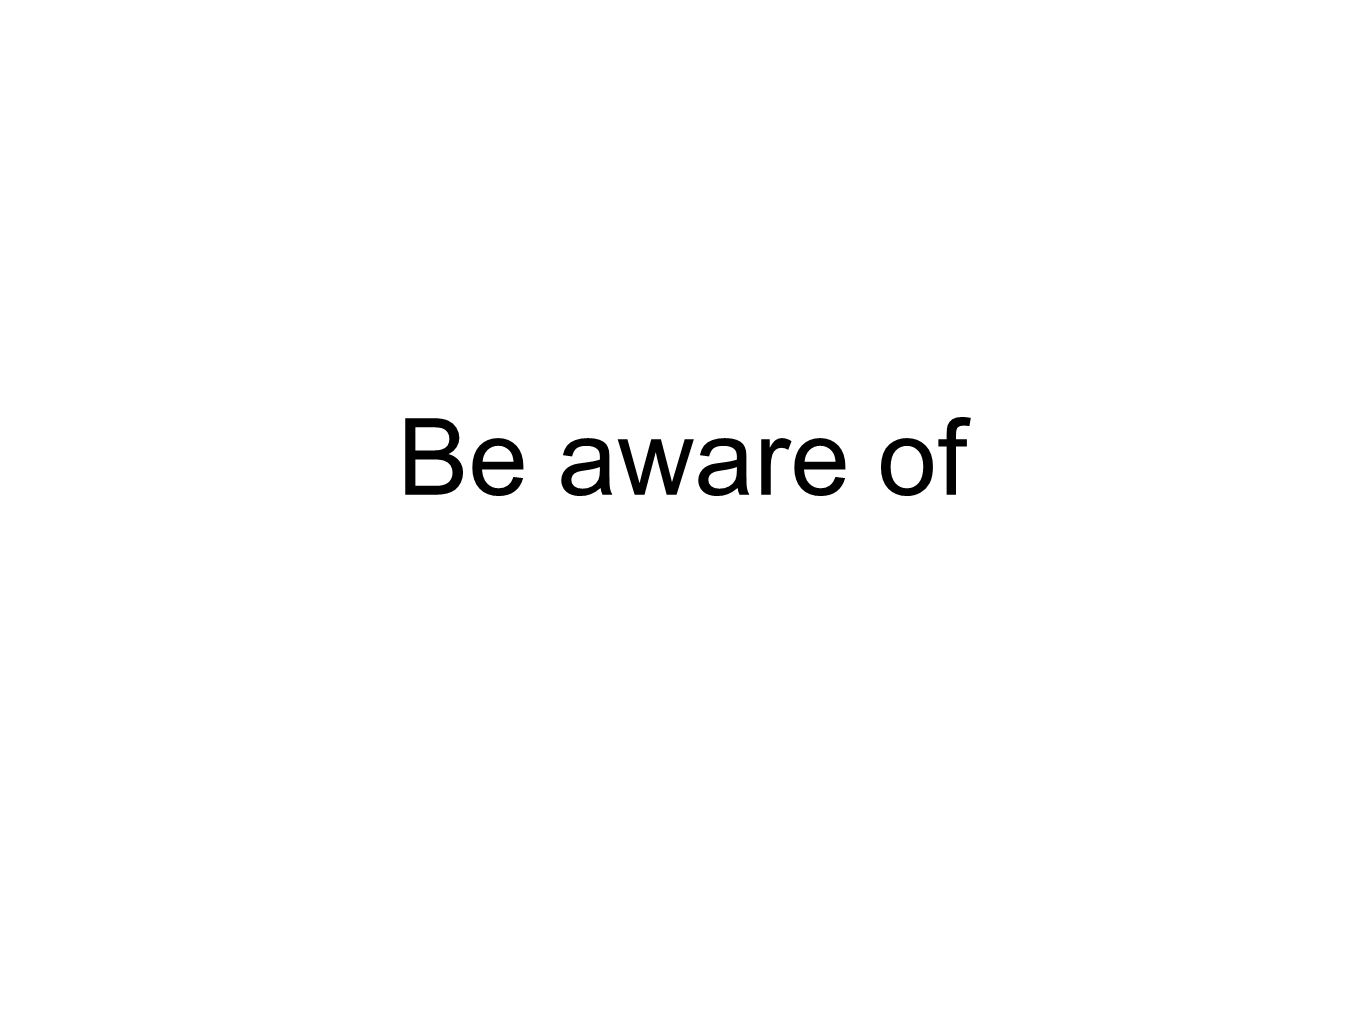 Be aware of